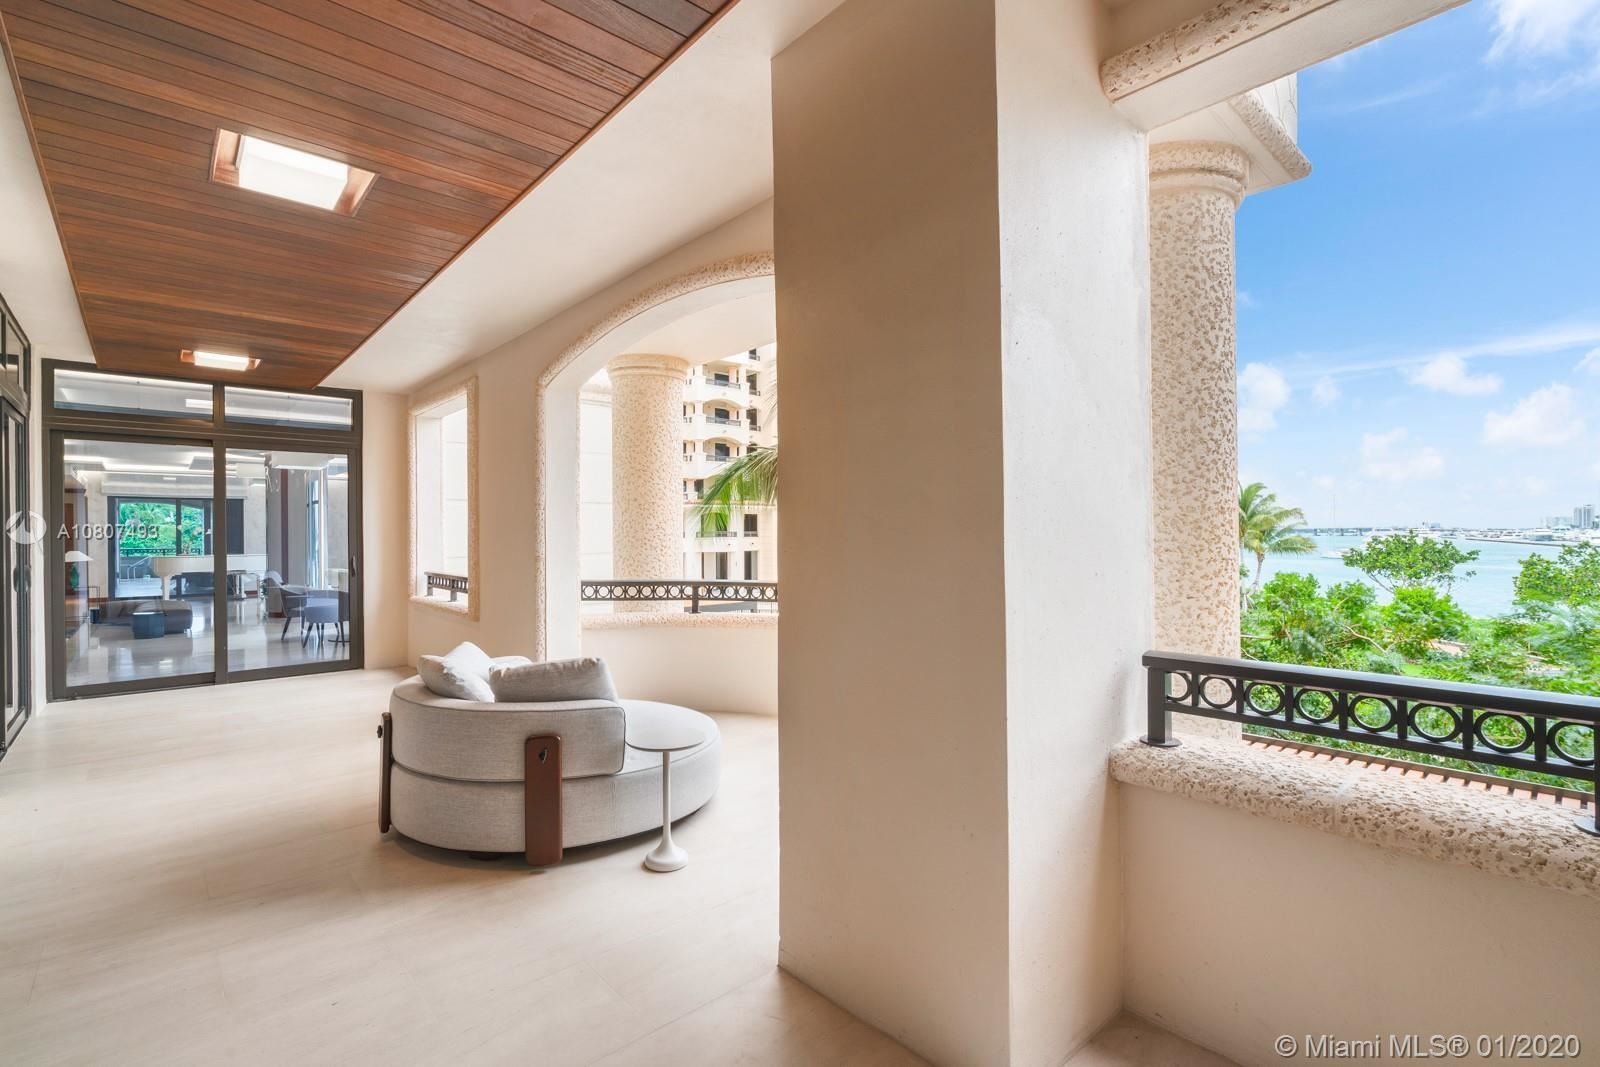 Photo 14 of Listing MLS a10807493 in 7021 Fisher Island Dr #7021 Miami Beach FL 33109